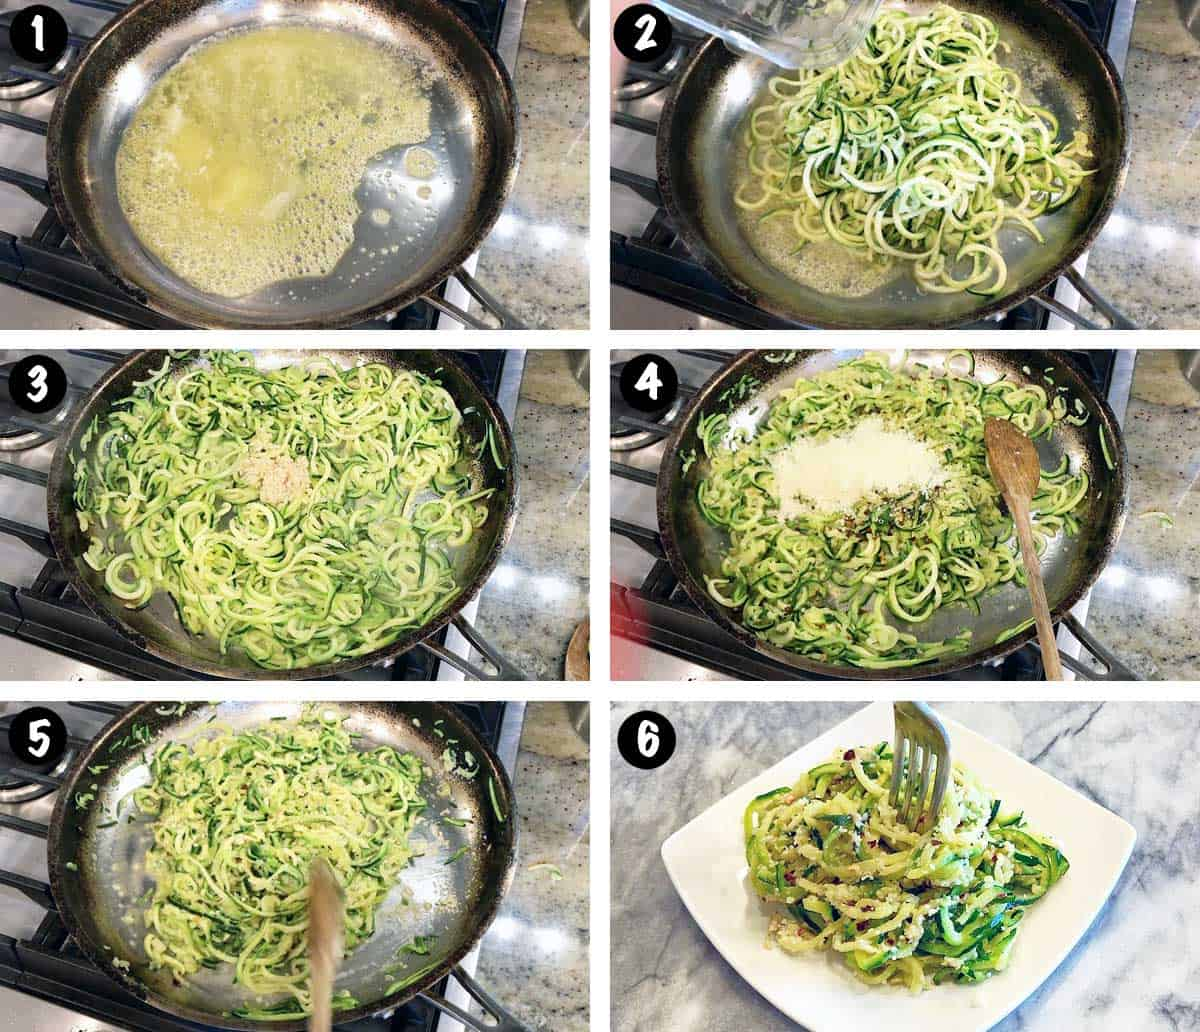 A photo collage showing the steps for making zucchini noodles.